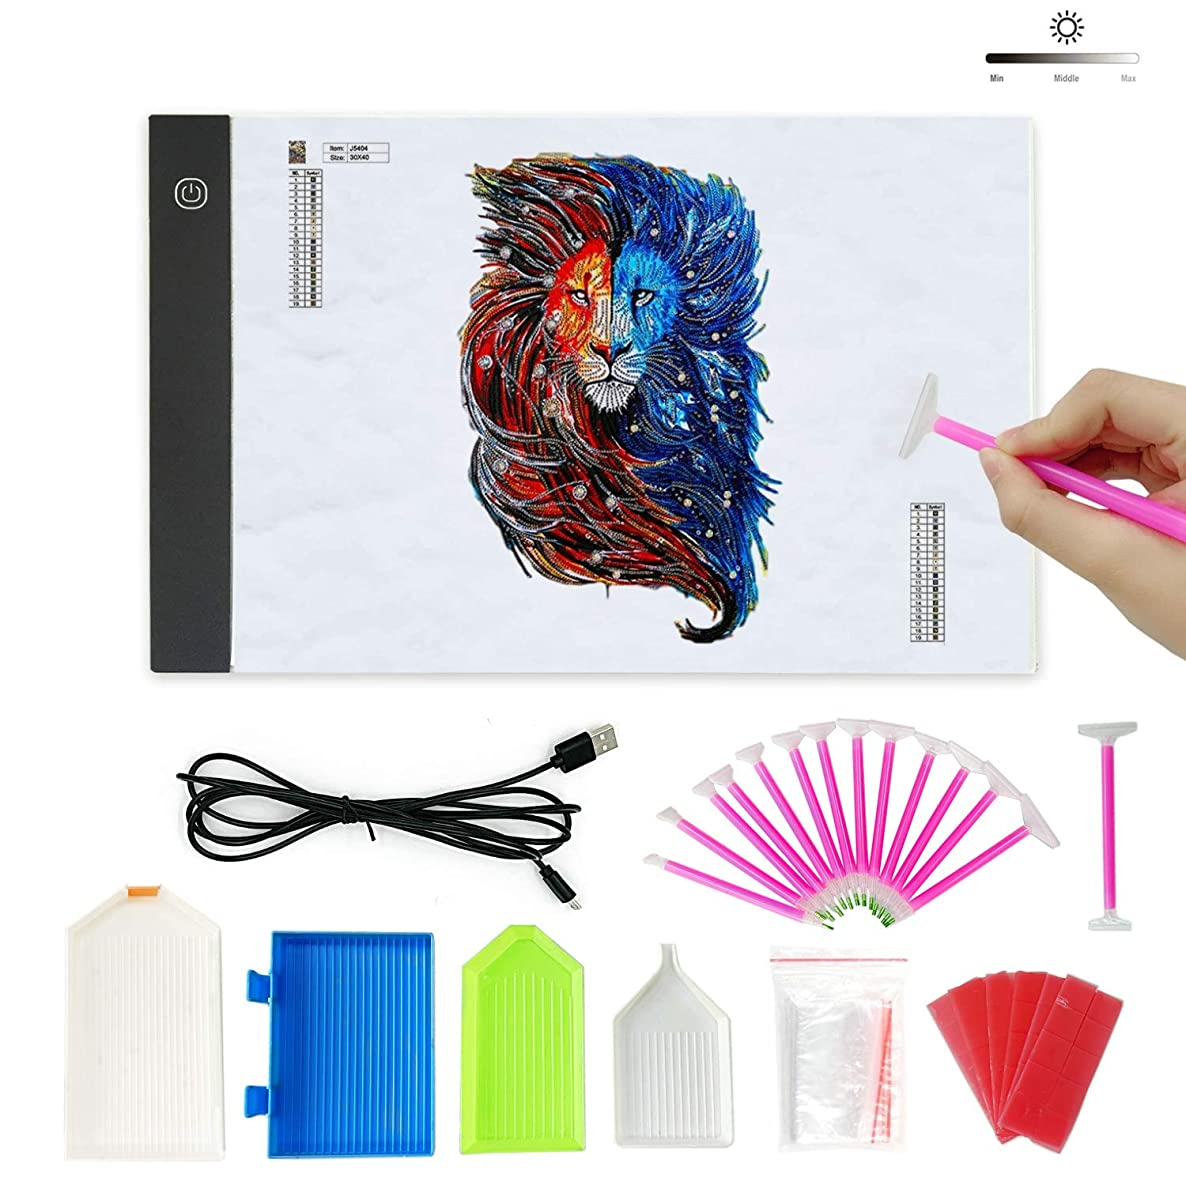 Lumsburry 5D Diamond Painting Advanced Kits, Tools Set with A4 LED Light Box, DIY Tools Sticky Pens, Trays, Taps Accessories for Diamond Painting